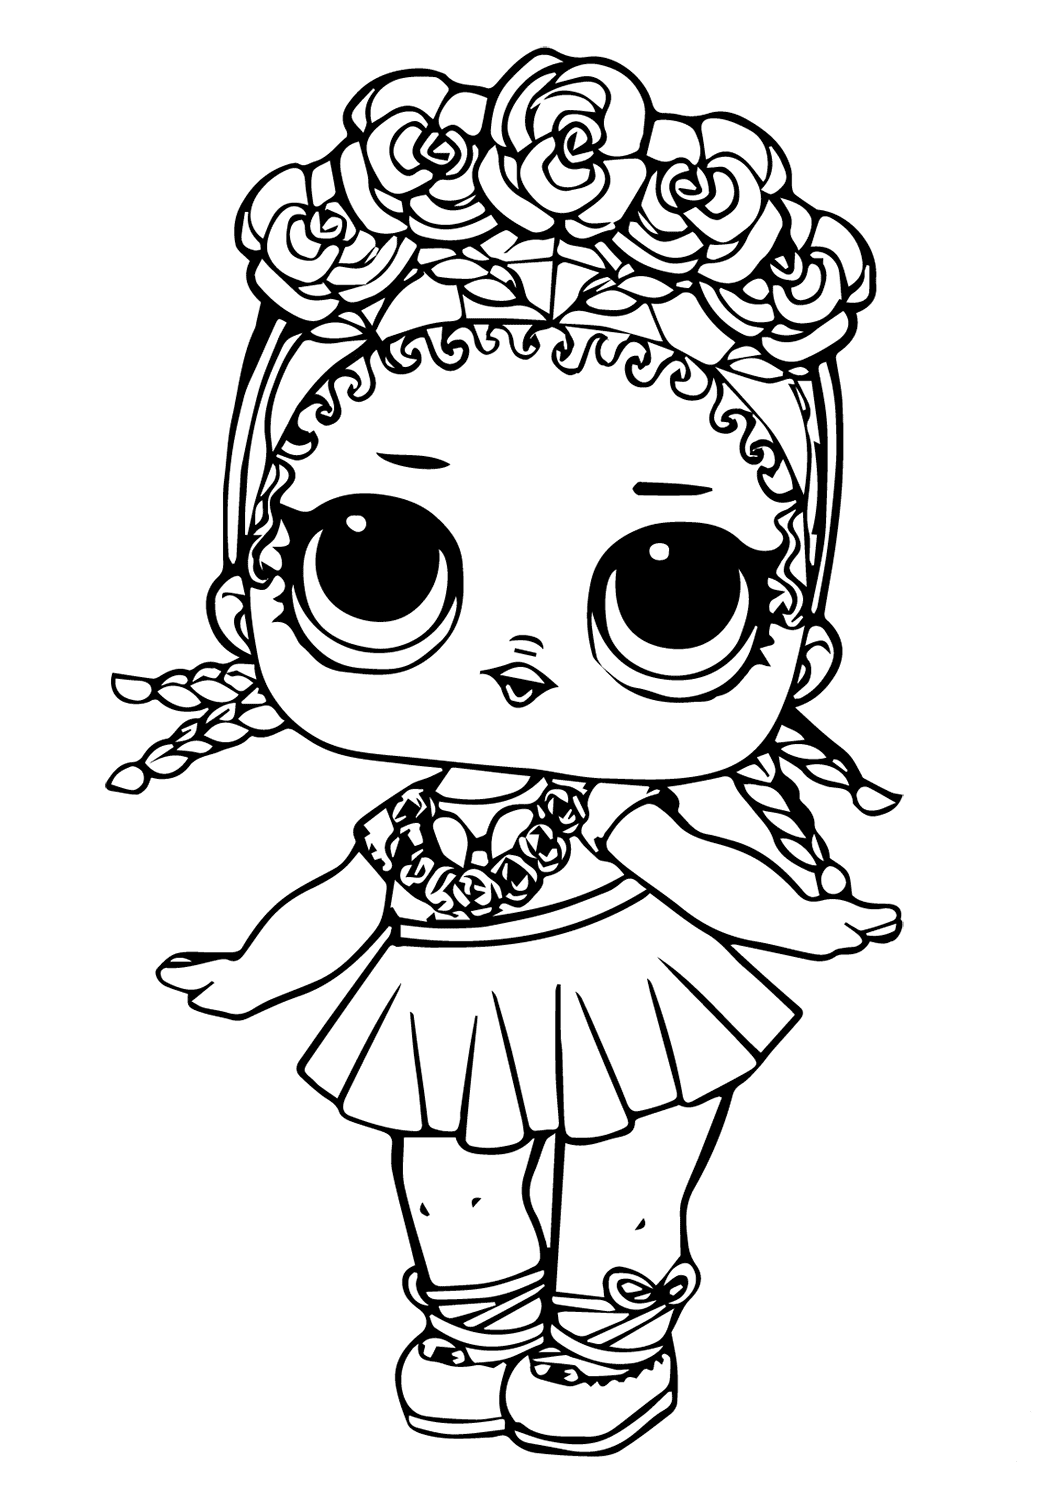 coloring sheets lol lol surprise dolls coloring pages print them for free coloring sheets lol